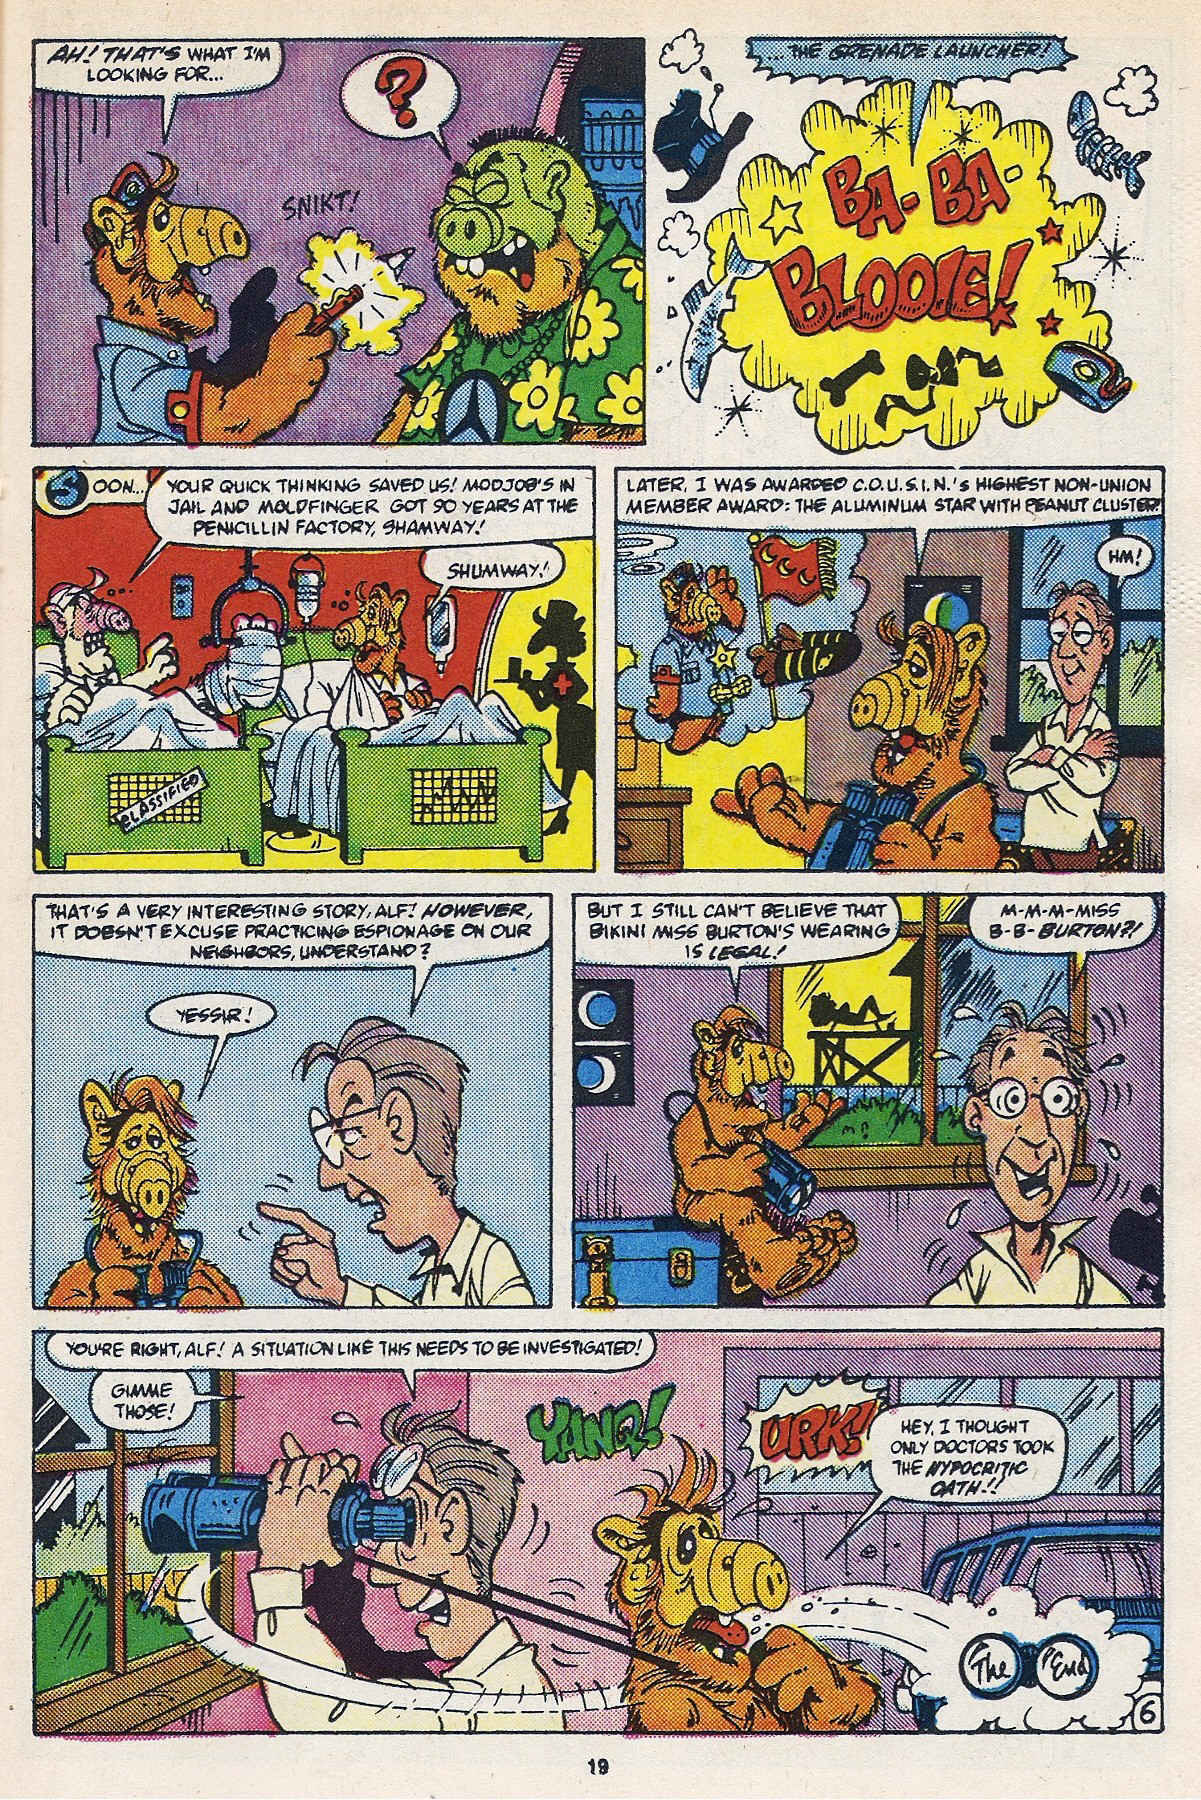 Read online ALF comic -  Issue #16 - 21